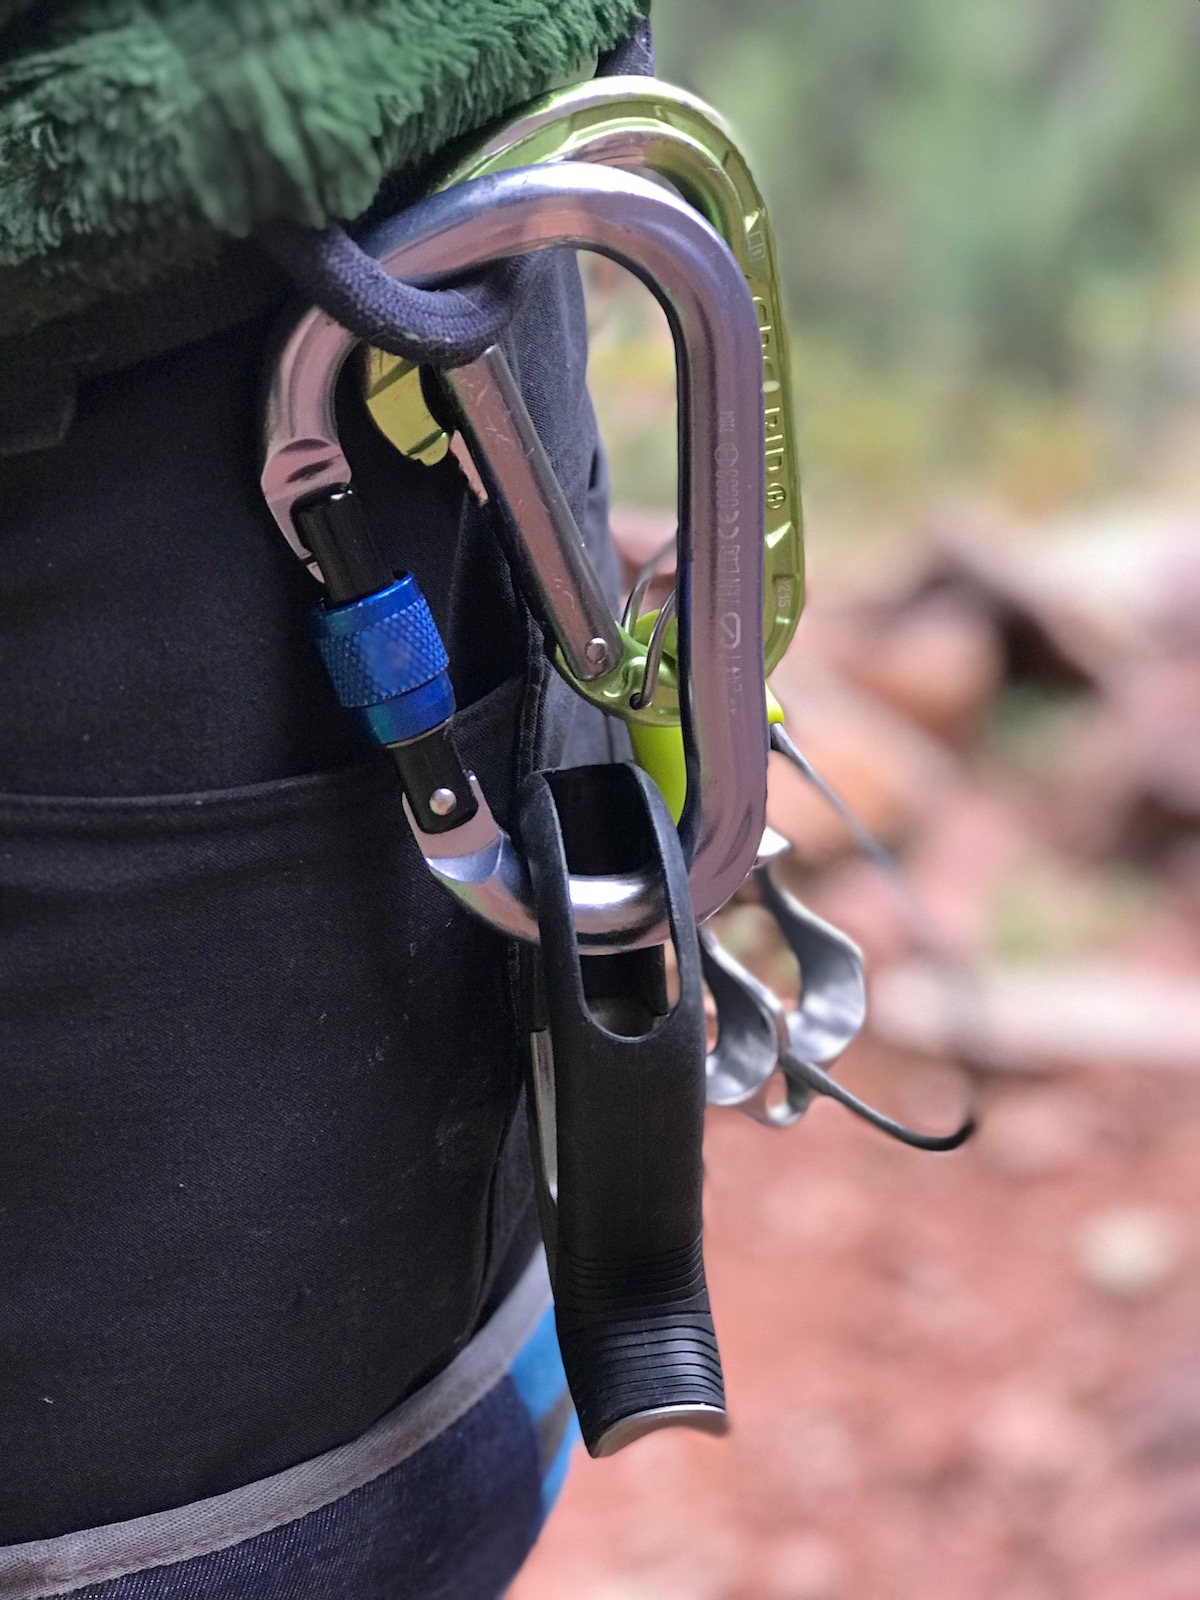 the black diamond atc pilot foreground racked on a harness with the edelrid mega